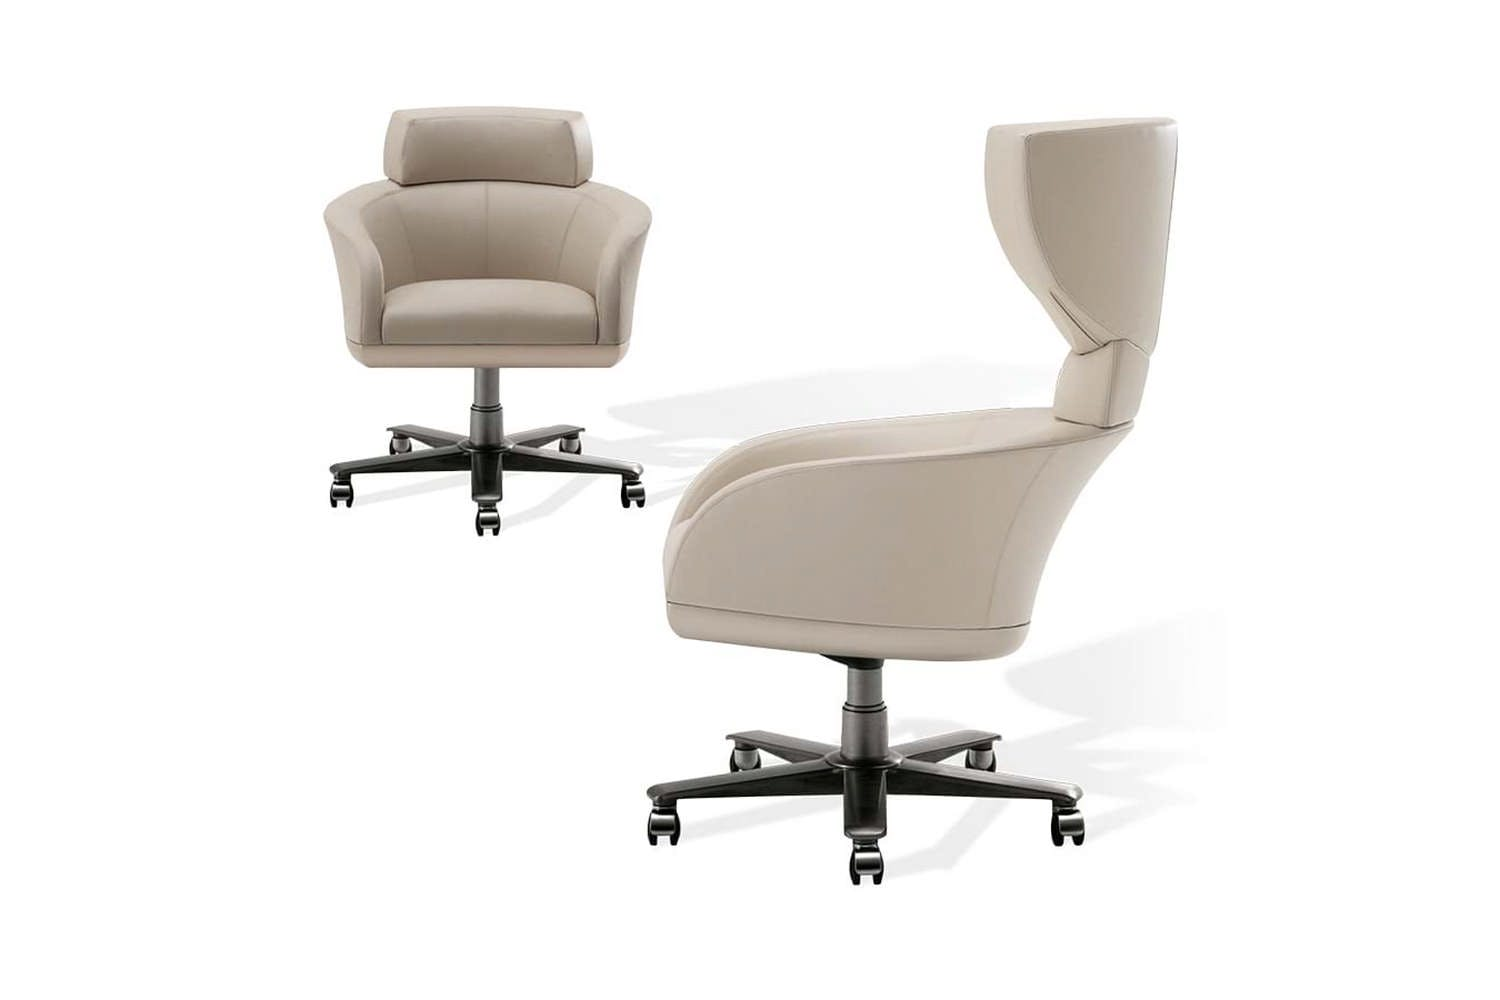 Selectus Chair by Leon Krier for Giorgetti | Space Furniture